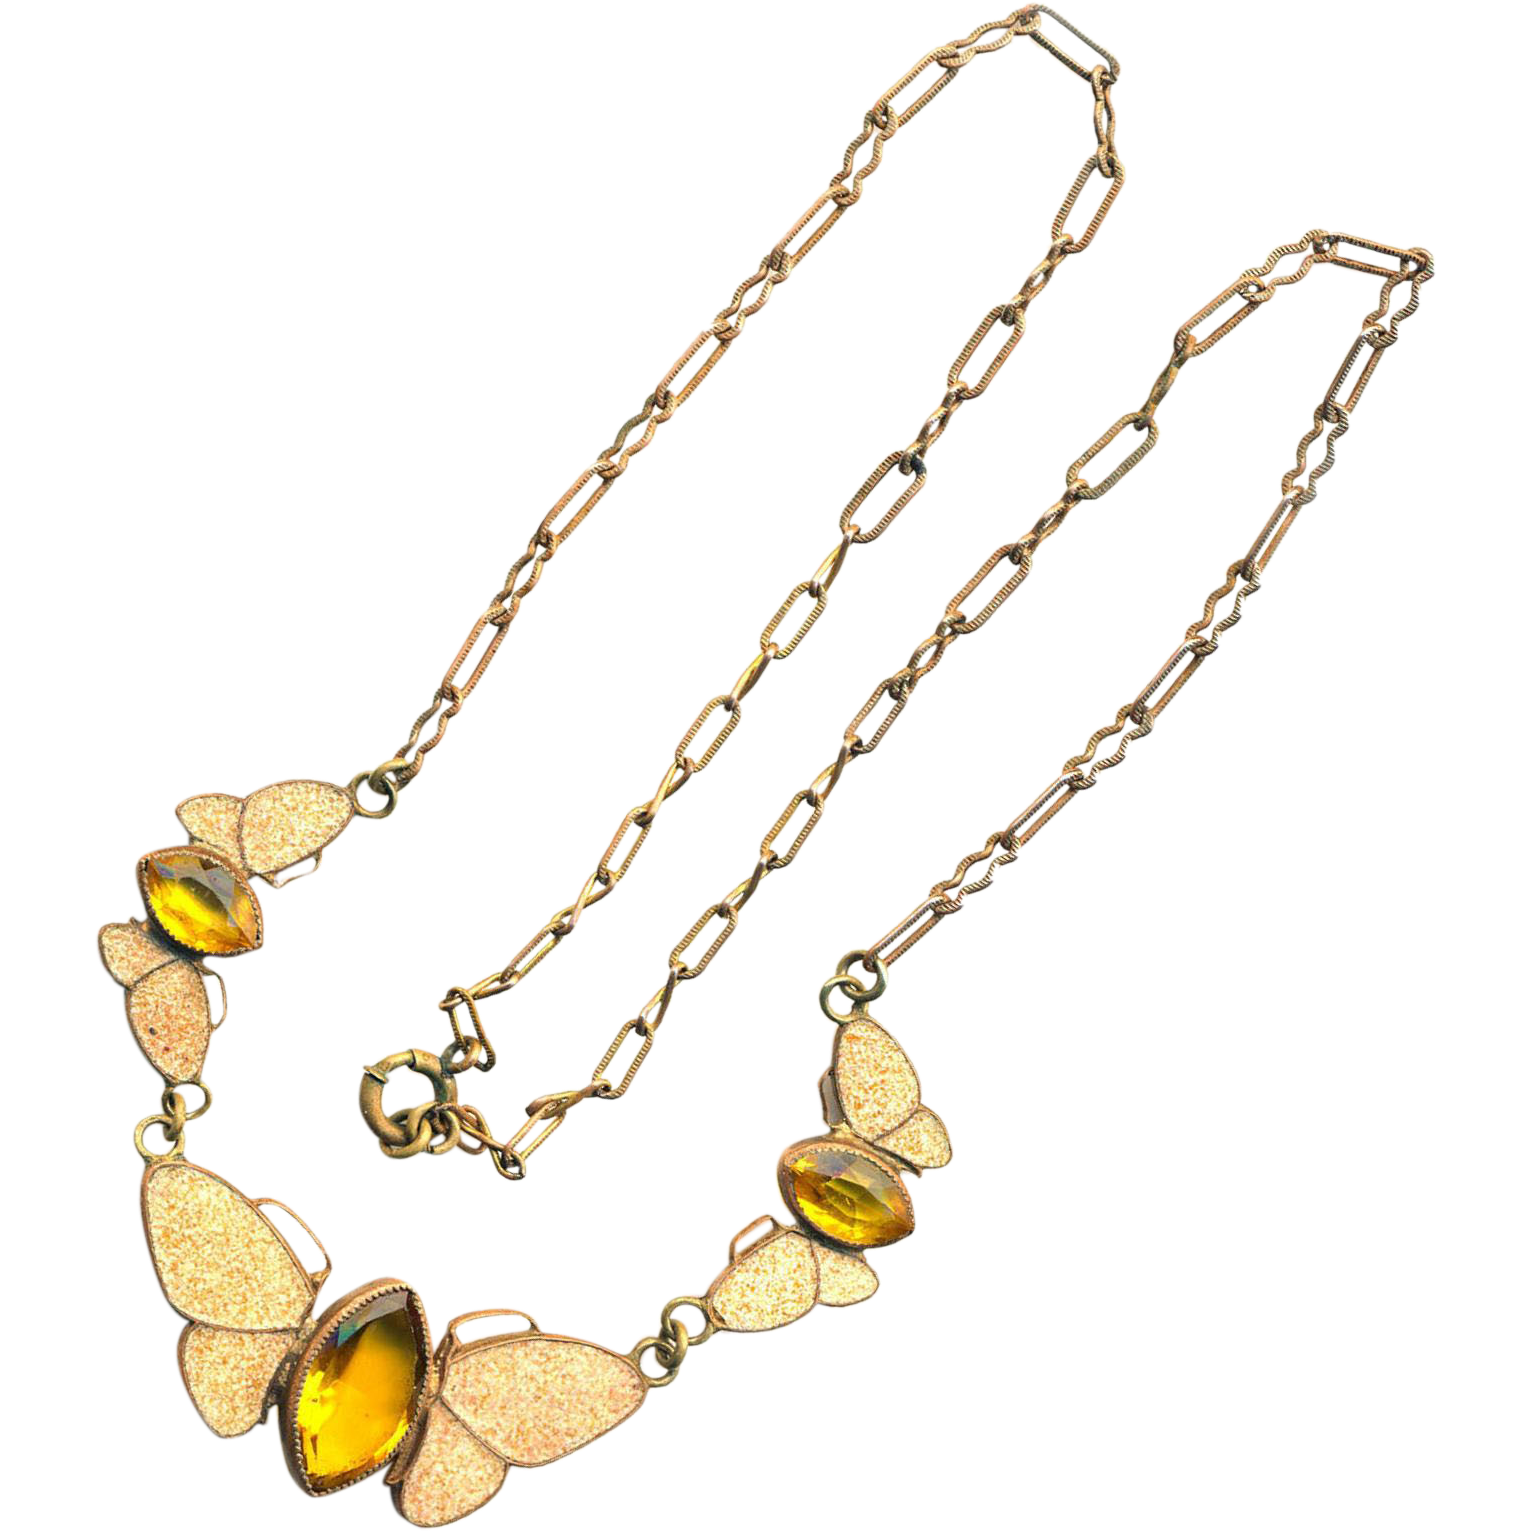 Necklace--Early 20th C. Art Nouveau Brass and Spatter Enamel Butterflies with Yellow Glass